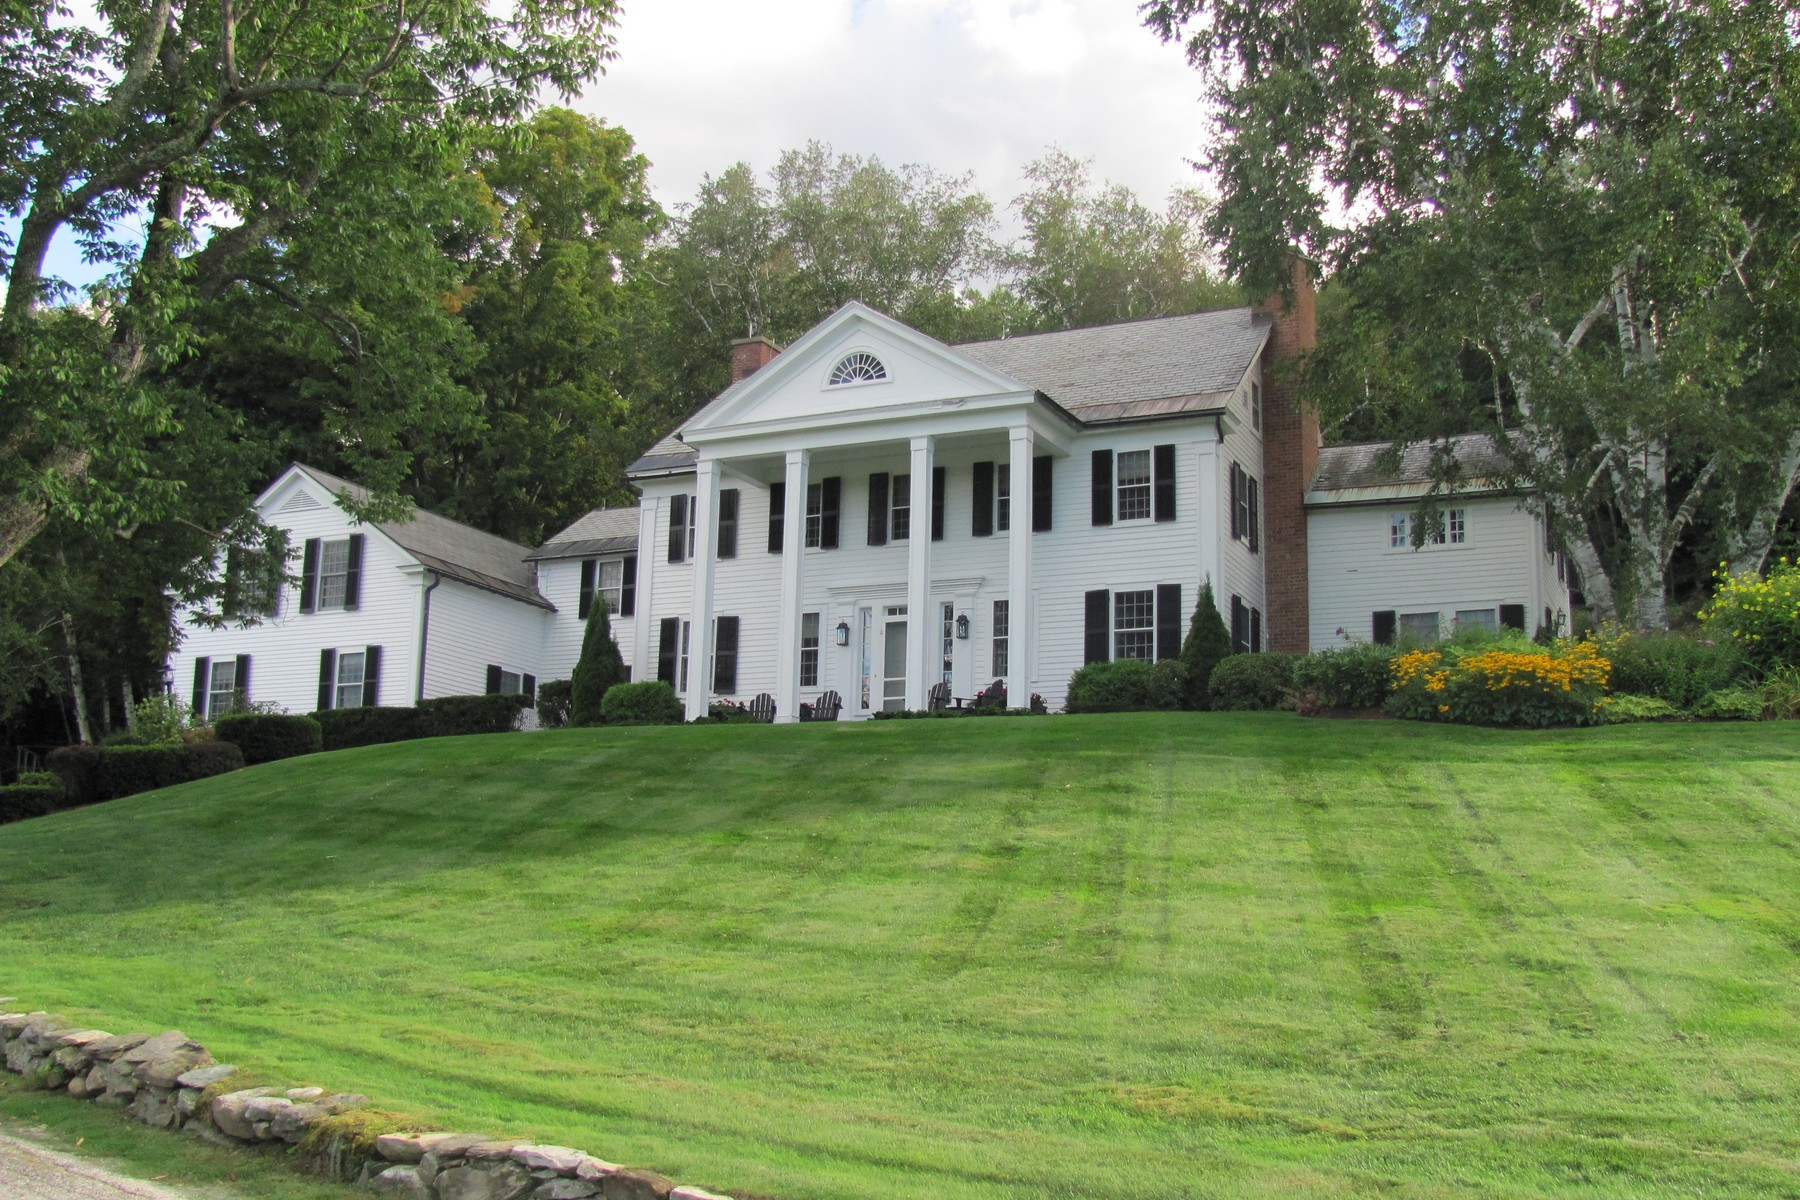 Single Family Home for Sale at 821 Nichols Hill Road, Dorset 821 Nichols Hill Rd Dorset, Vermont, 05251 United States